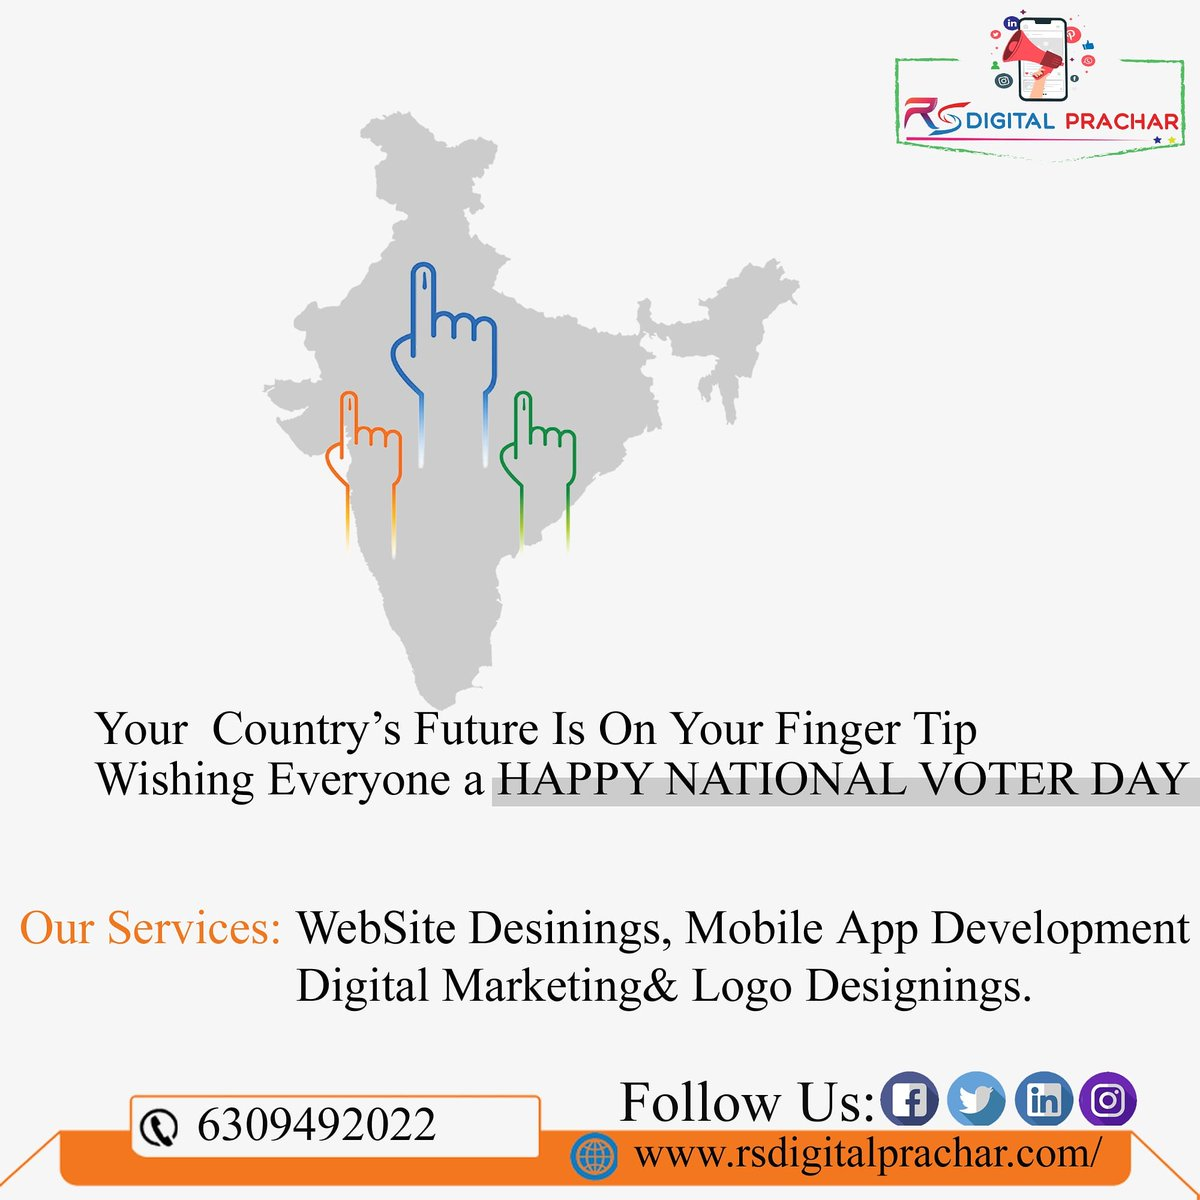 your contry's future is on your finger tip wishing everyone a happy #nationalvoterday #voting #vote #election #elections #politics #votingmatters #democracy #votingrights #electionday  #govote #registertovote #voterregistration #ivoted #votebymail #news #government #voter